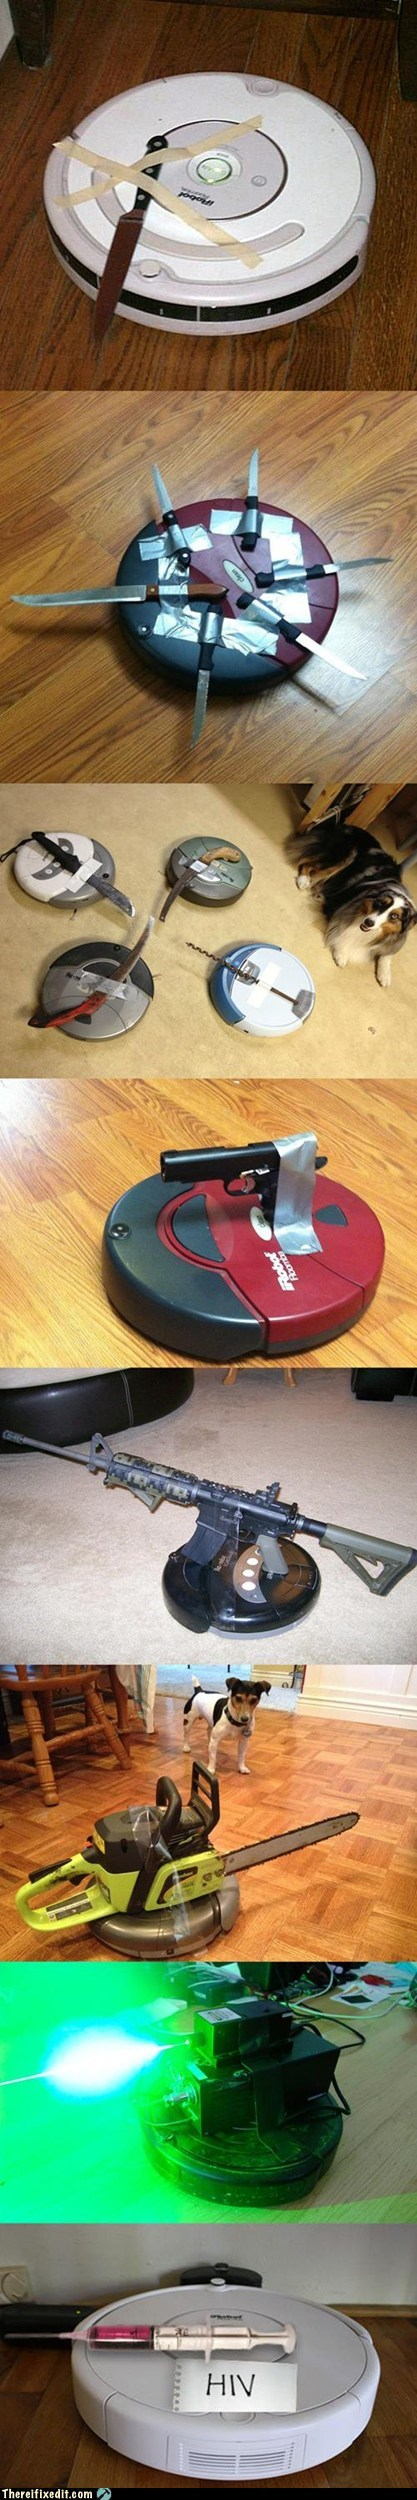 Roomba Evolution of the Day